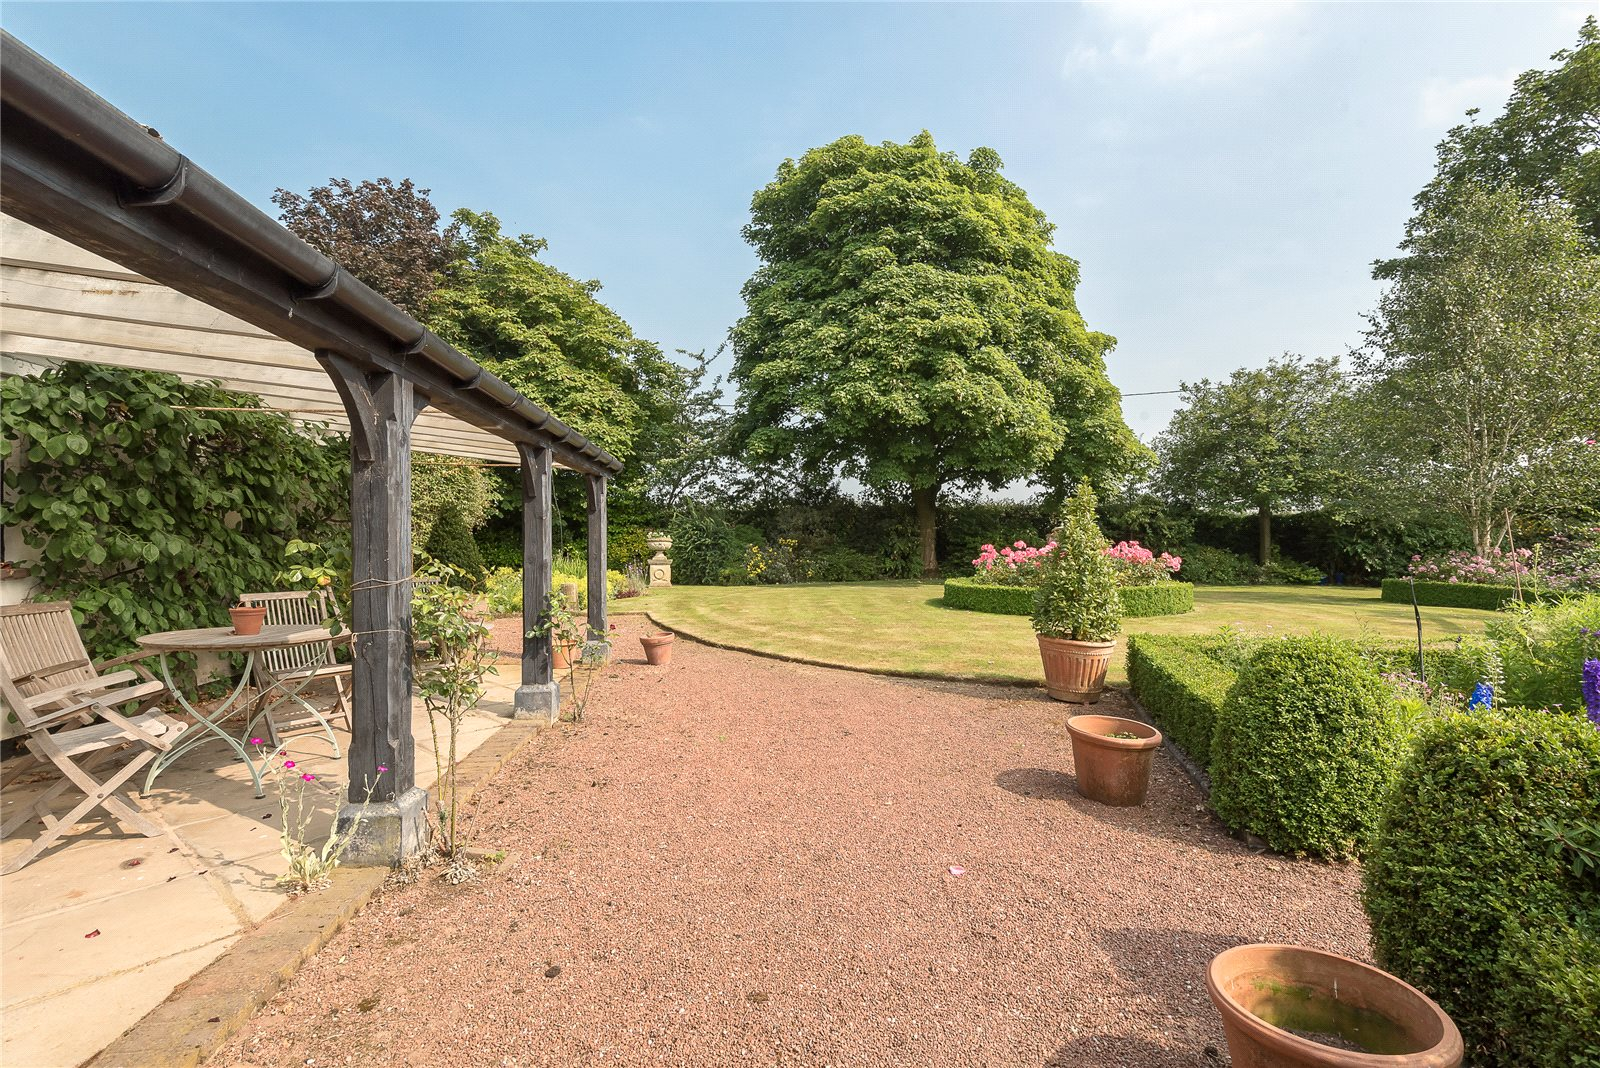 Additional photo for property listing at Peckforton Hall Lane, Peckforton, Tarporley, Cheshire, CW6 Tarporley, Англия